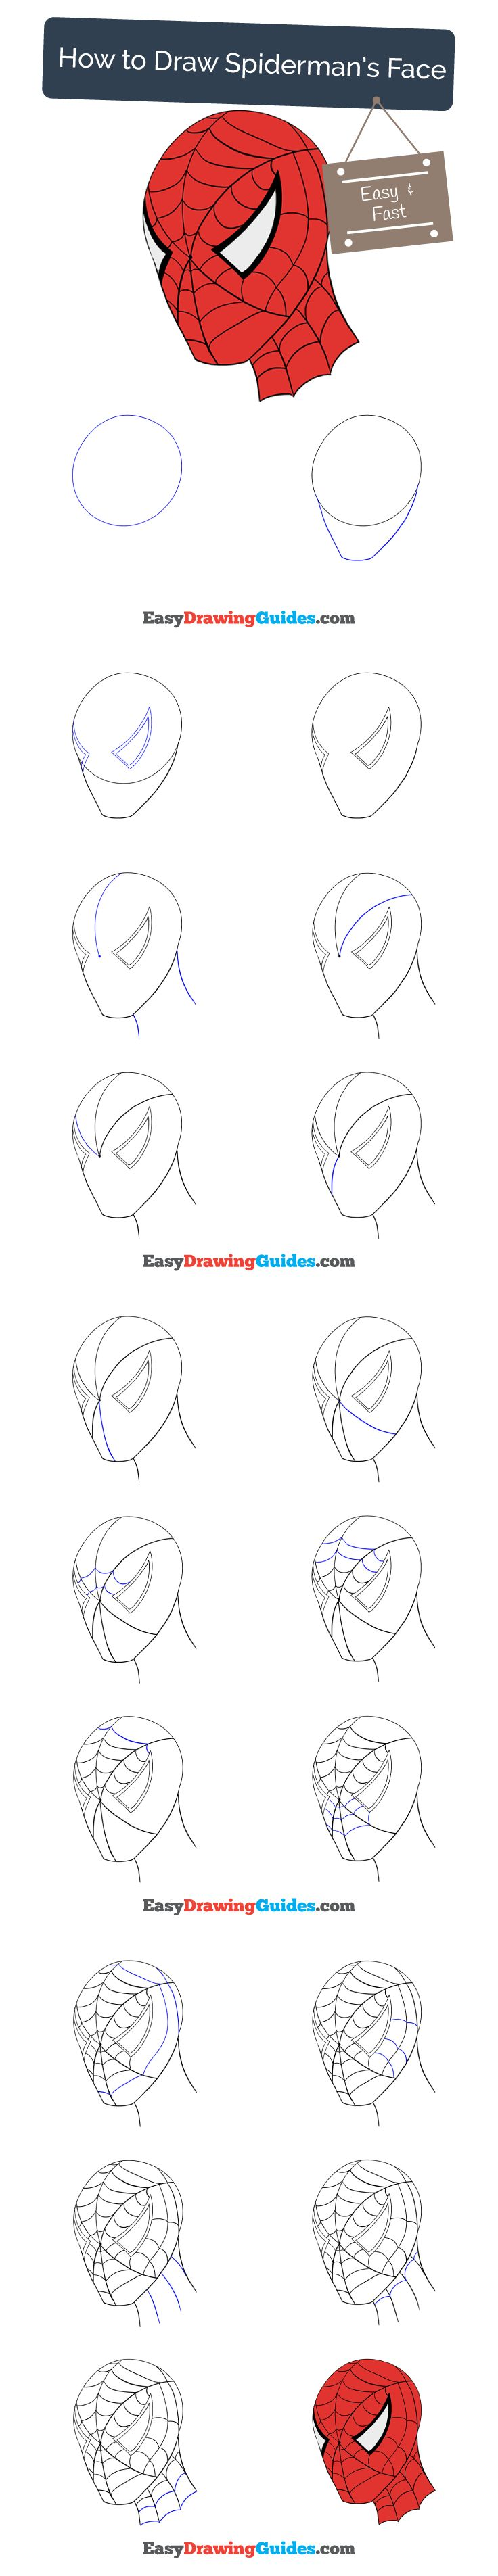 How to draw a horse step by step easy for kids - photo#54